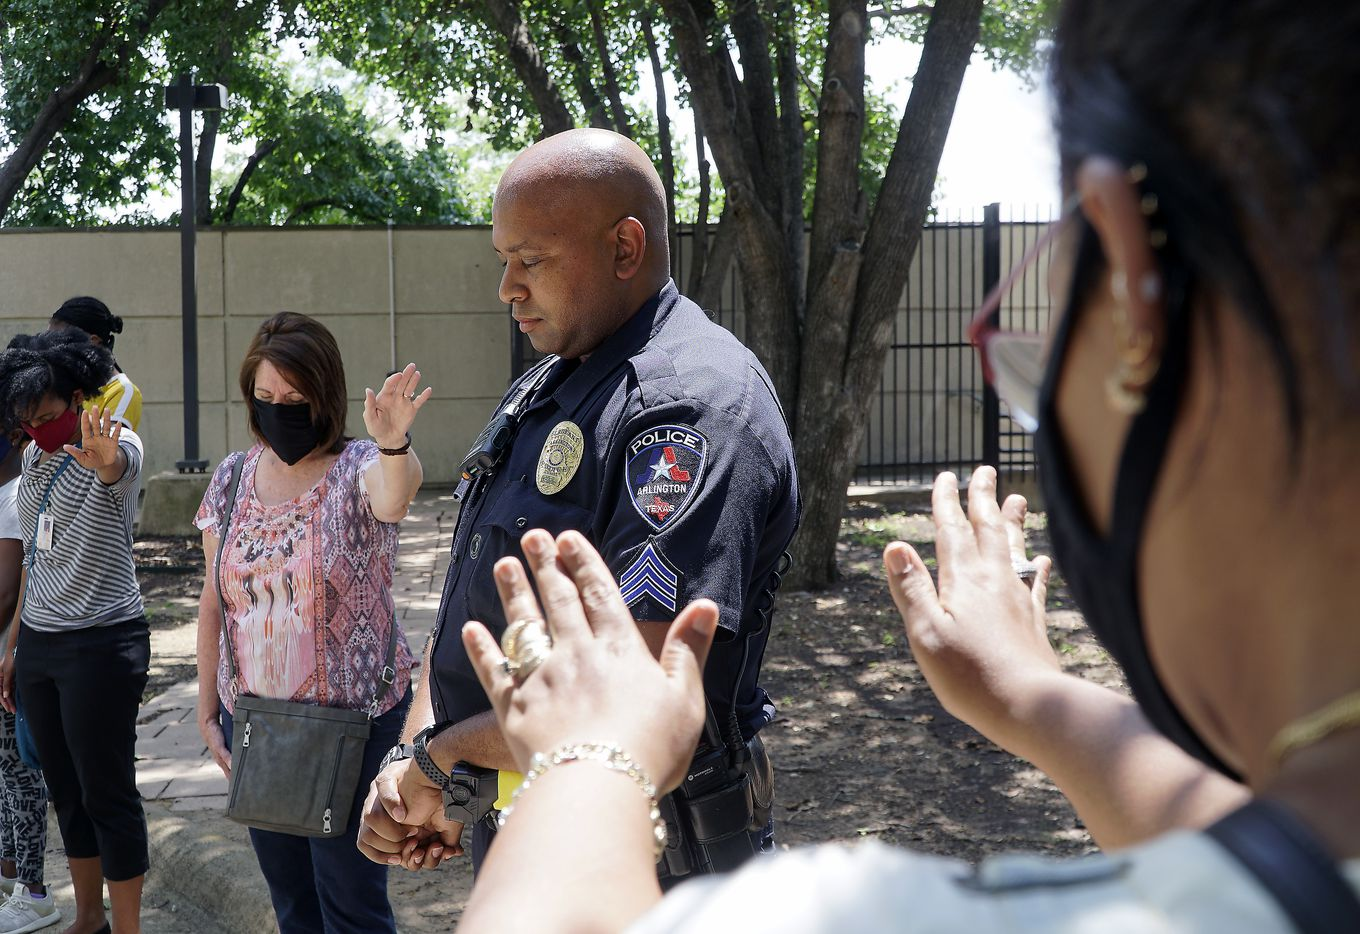 Sgt. Jeremy Lee was among several officers at a prayer for peace at police headquarters in Arlington, Texas on Tuesday, June 2, 2020.